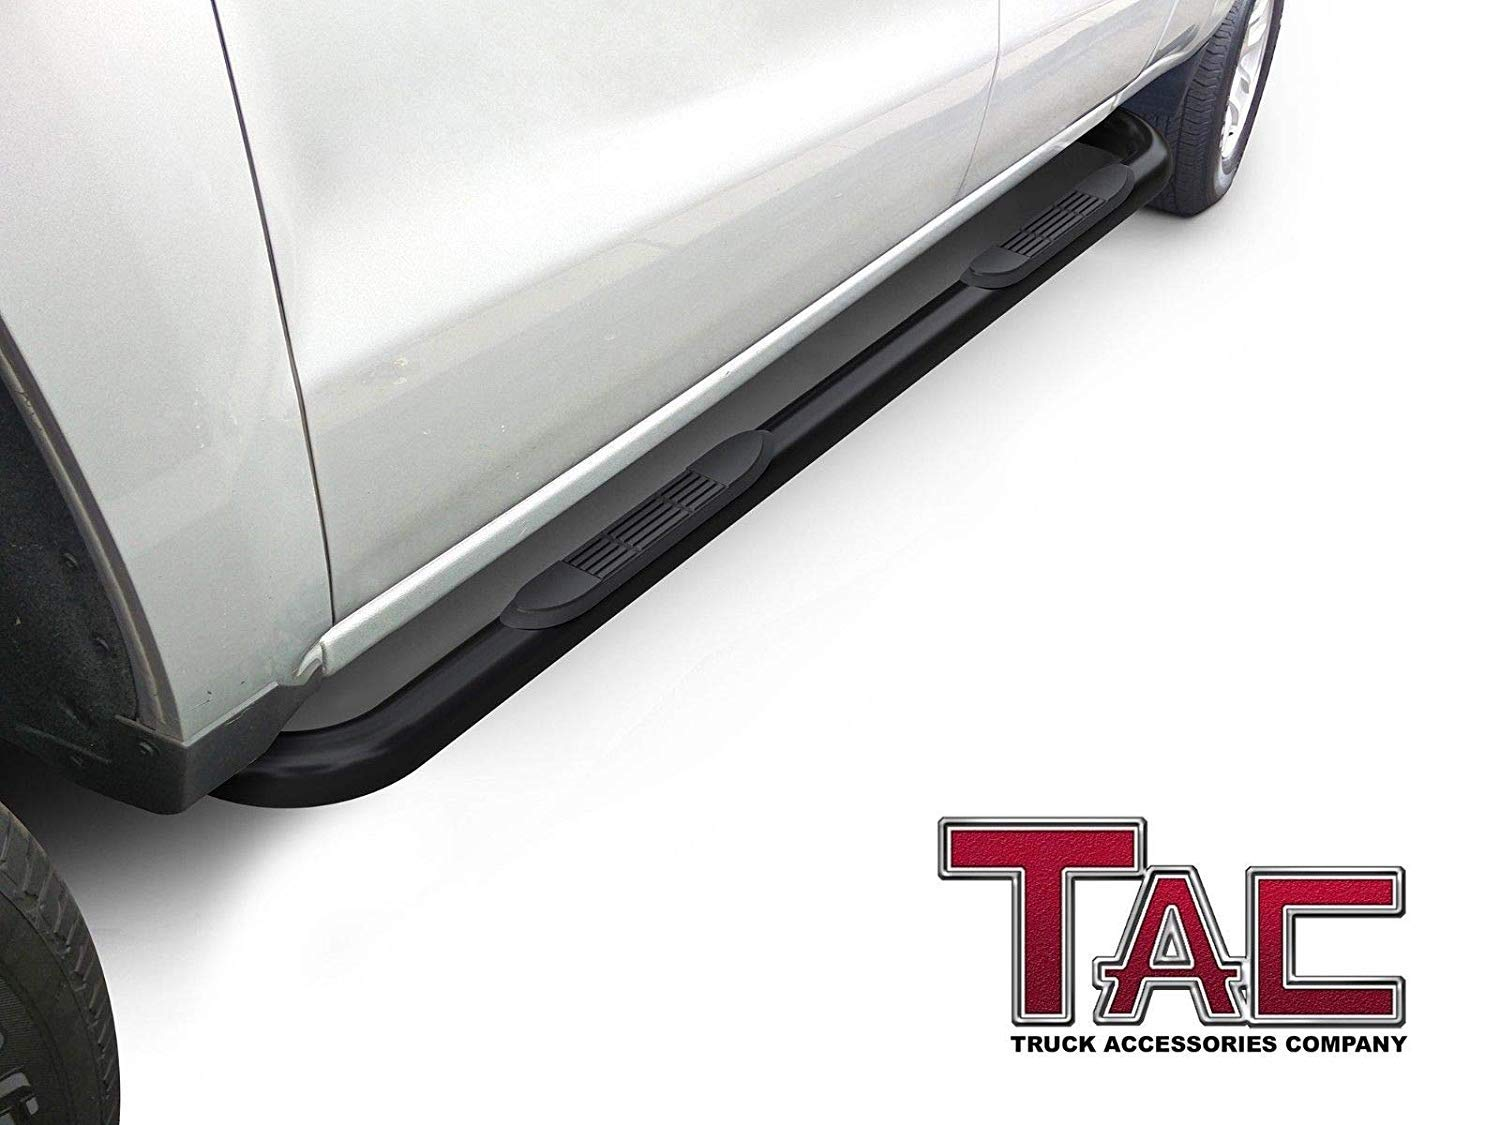 2010-2019 Dodge RAM 2500//3500//4500//5500 Crew Cab Pickup Truck 3 Stainless Steel Step Rails Running Boards Off Road Exterior Accessories 2 Pieces TAC Side Steps Fit 2009-2018 Dodge RAM 1500 Crew Cab